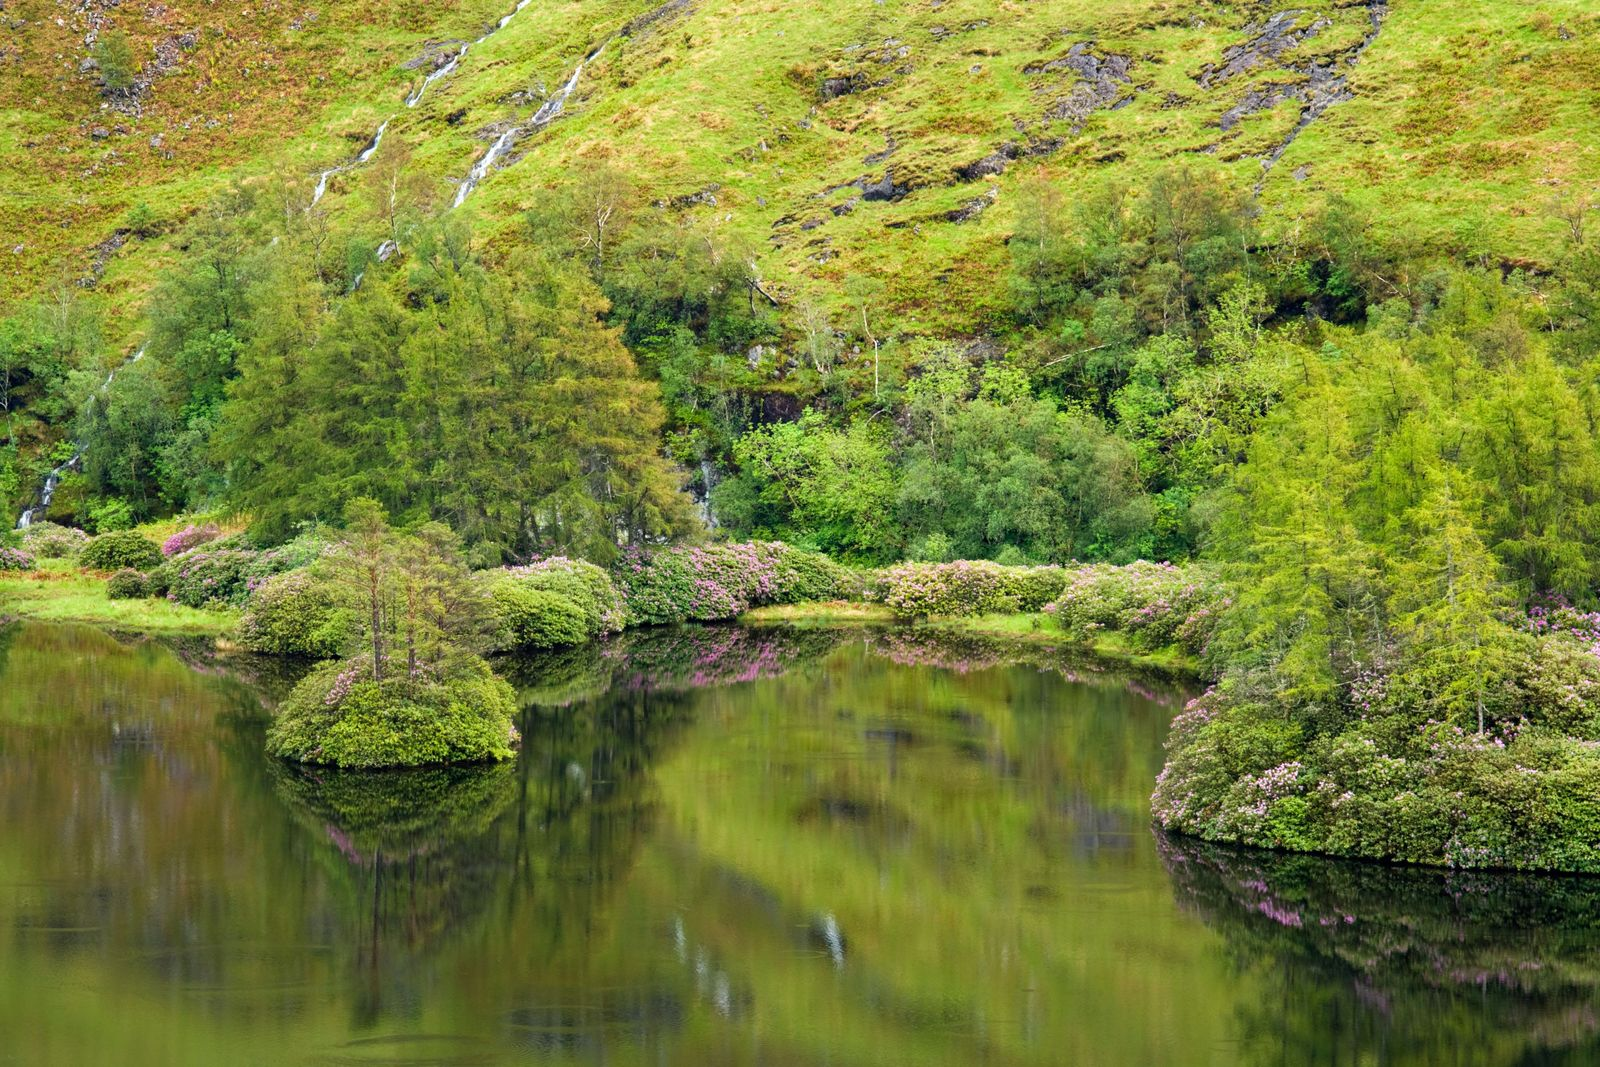 Rhododendron, like purple stars amongst the greenery on the shore of Lochan Urr in Glen Etive, ...